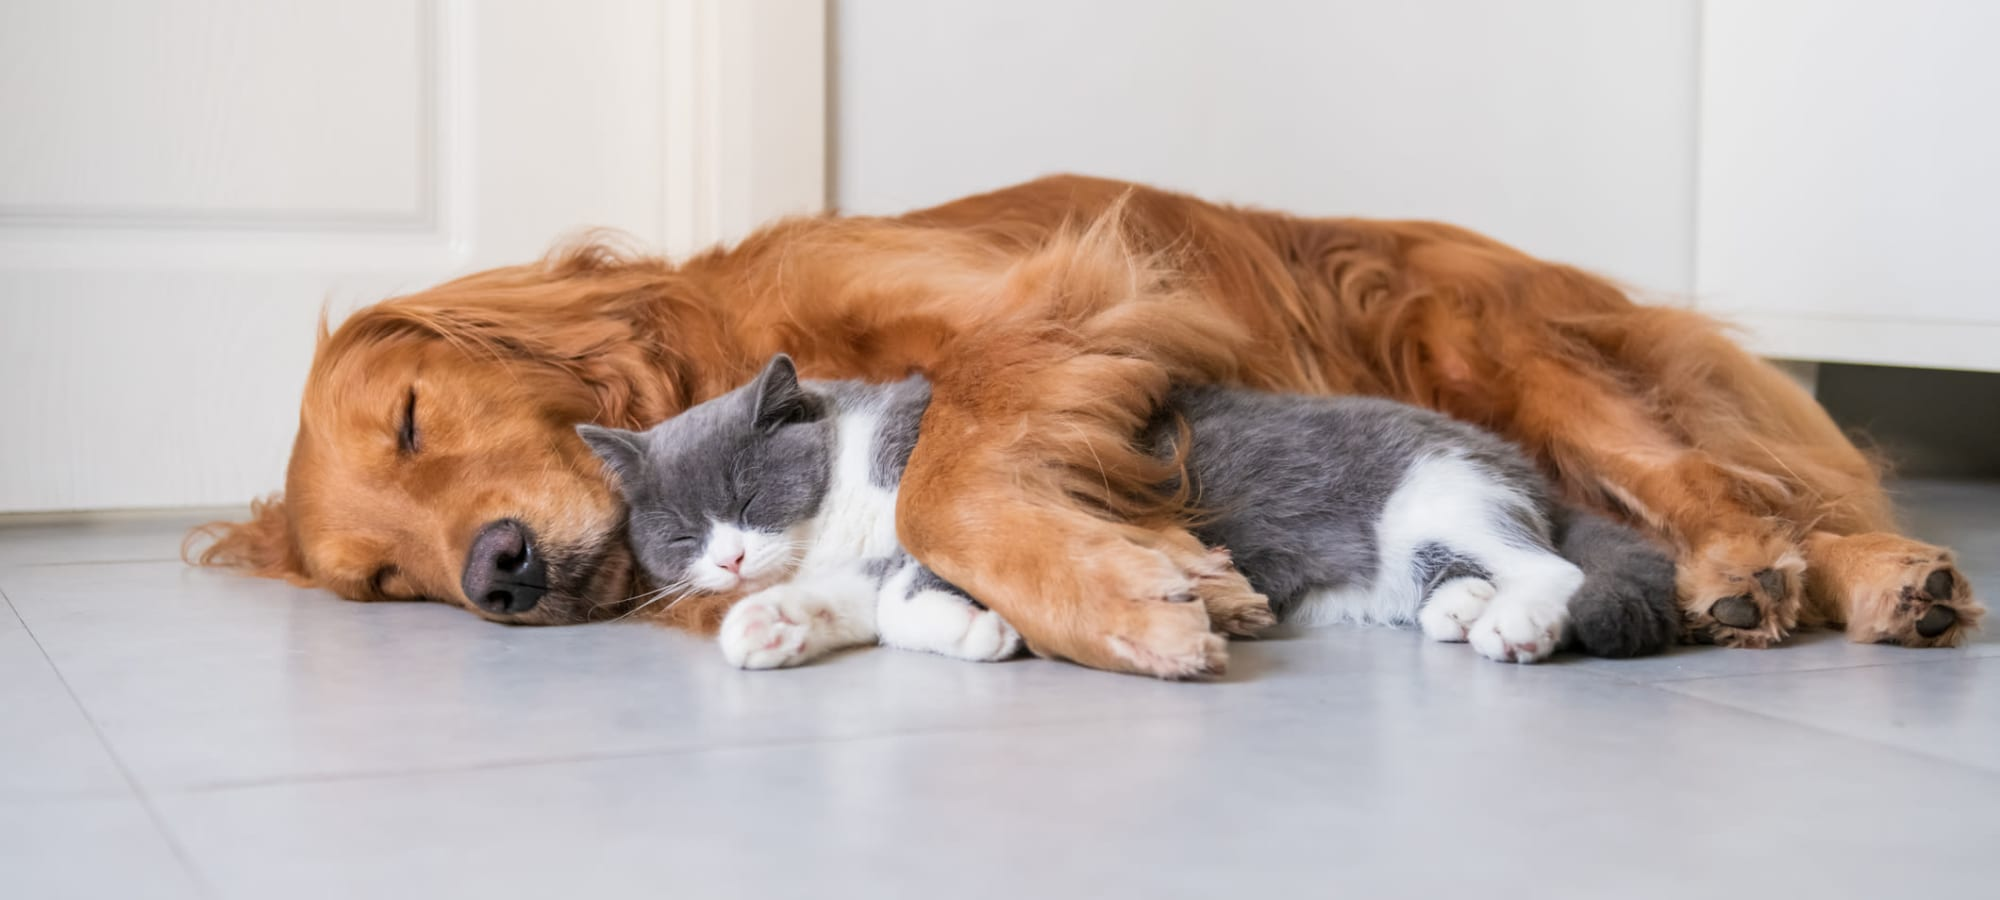 Pet Friendly apartments at Fusion in Jacksonville, Florida